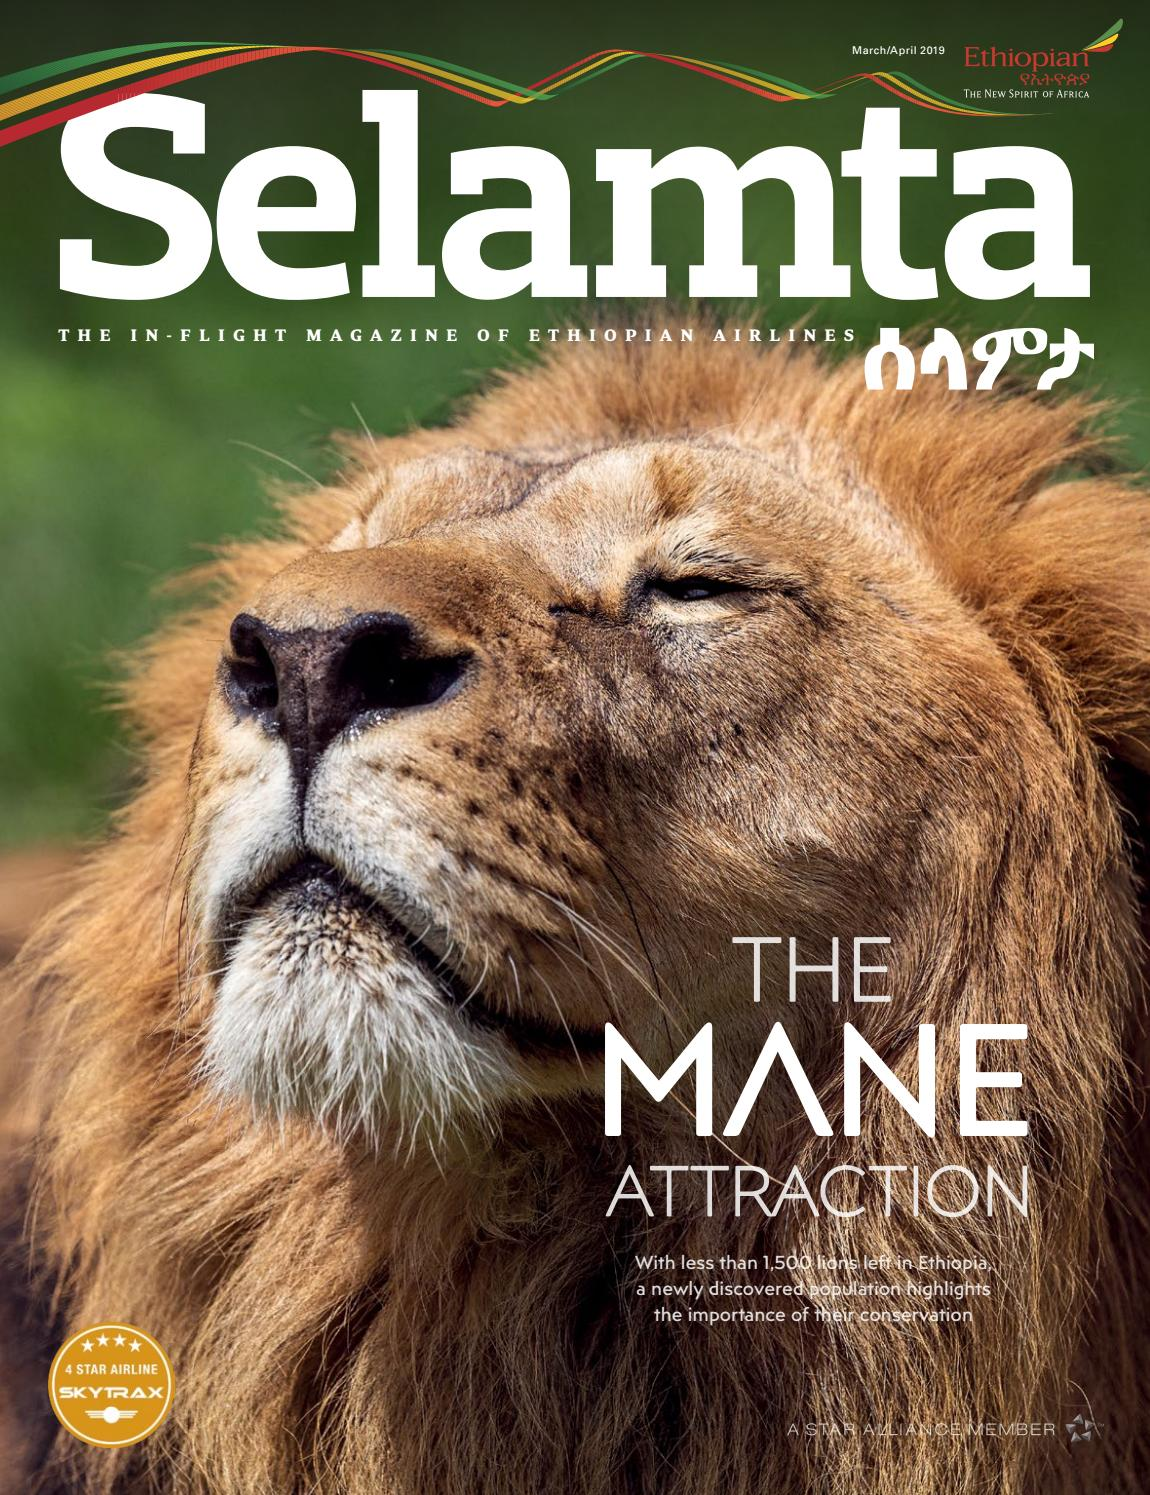 65a2c99df2b1 Selamta March-April 2019 by Selamta magazine - issuu